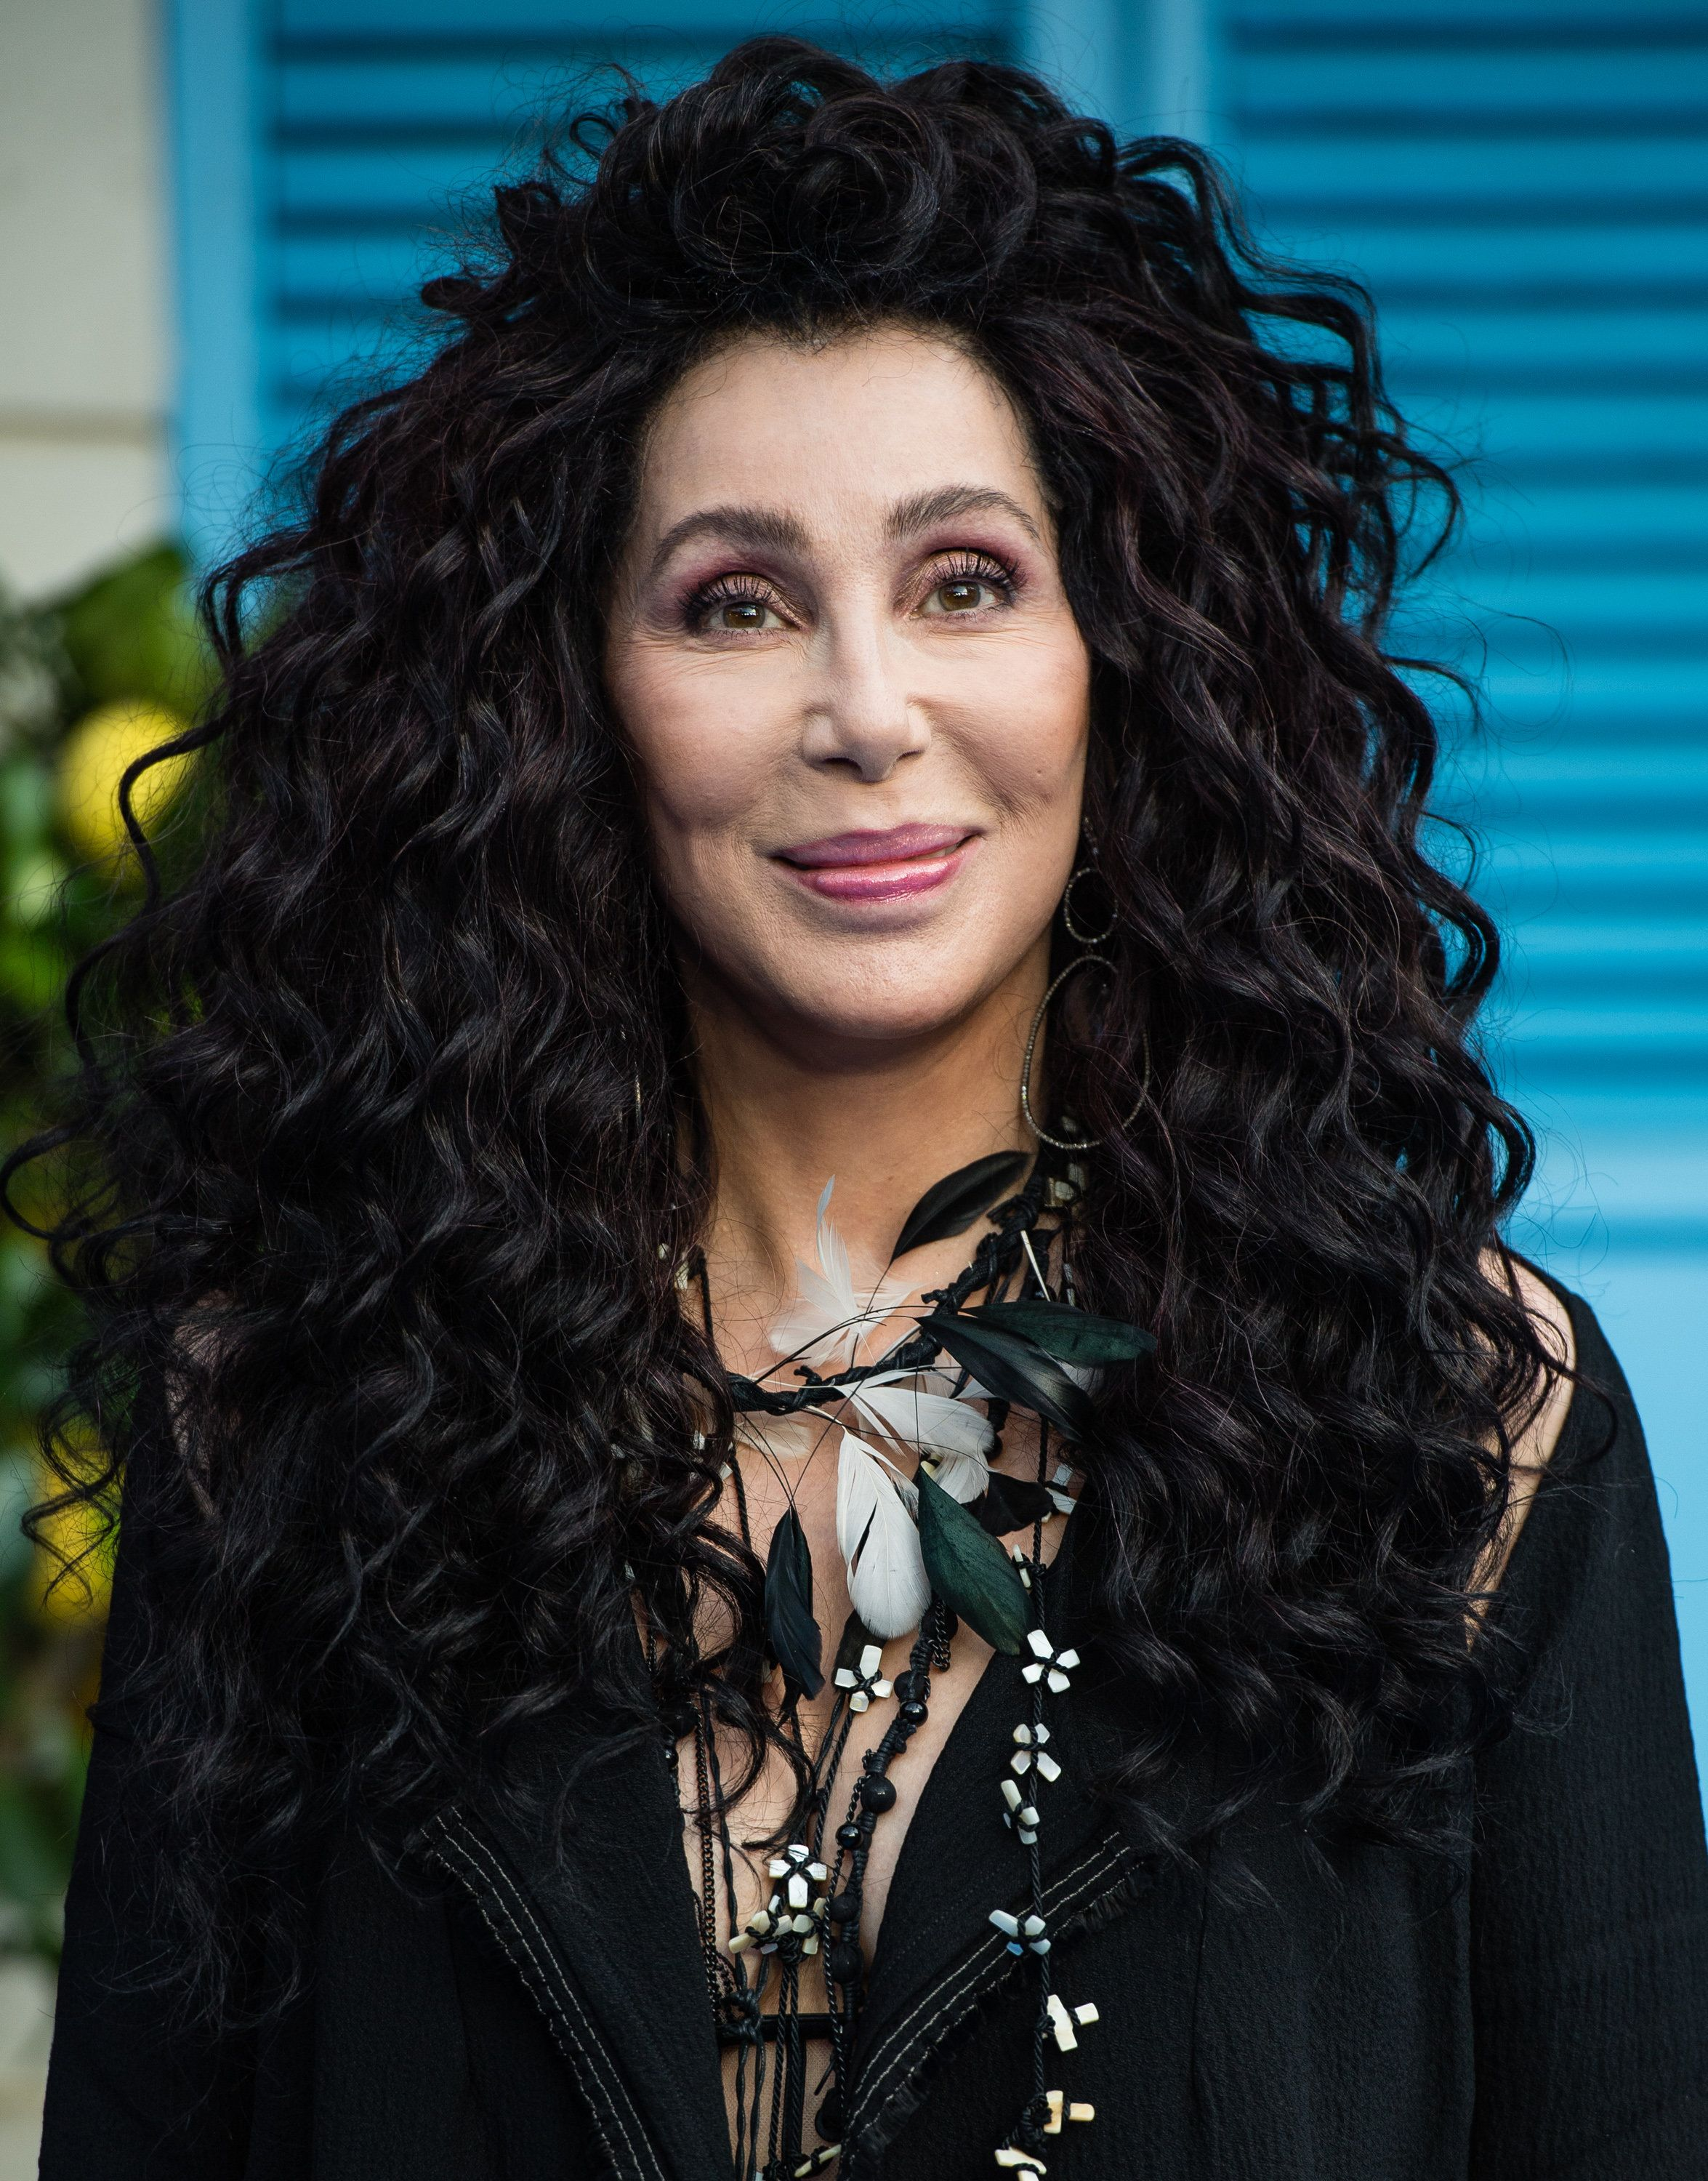 LONDON, ENGLAND - JULY 16:  Cher attends the UK Premiere of 'Mamma Mia! Here We Go Again' at Eventim Apollo on July 16, 2018 in London, England.  (Photo by Samir Hussein/WireImage)